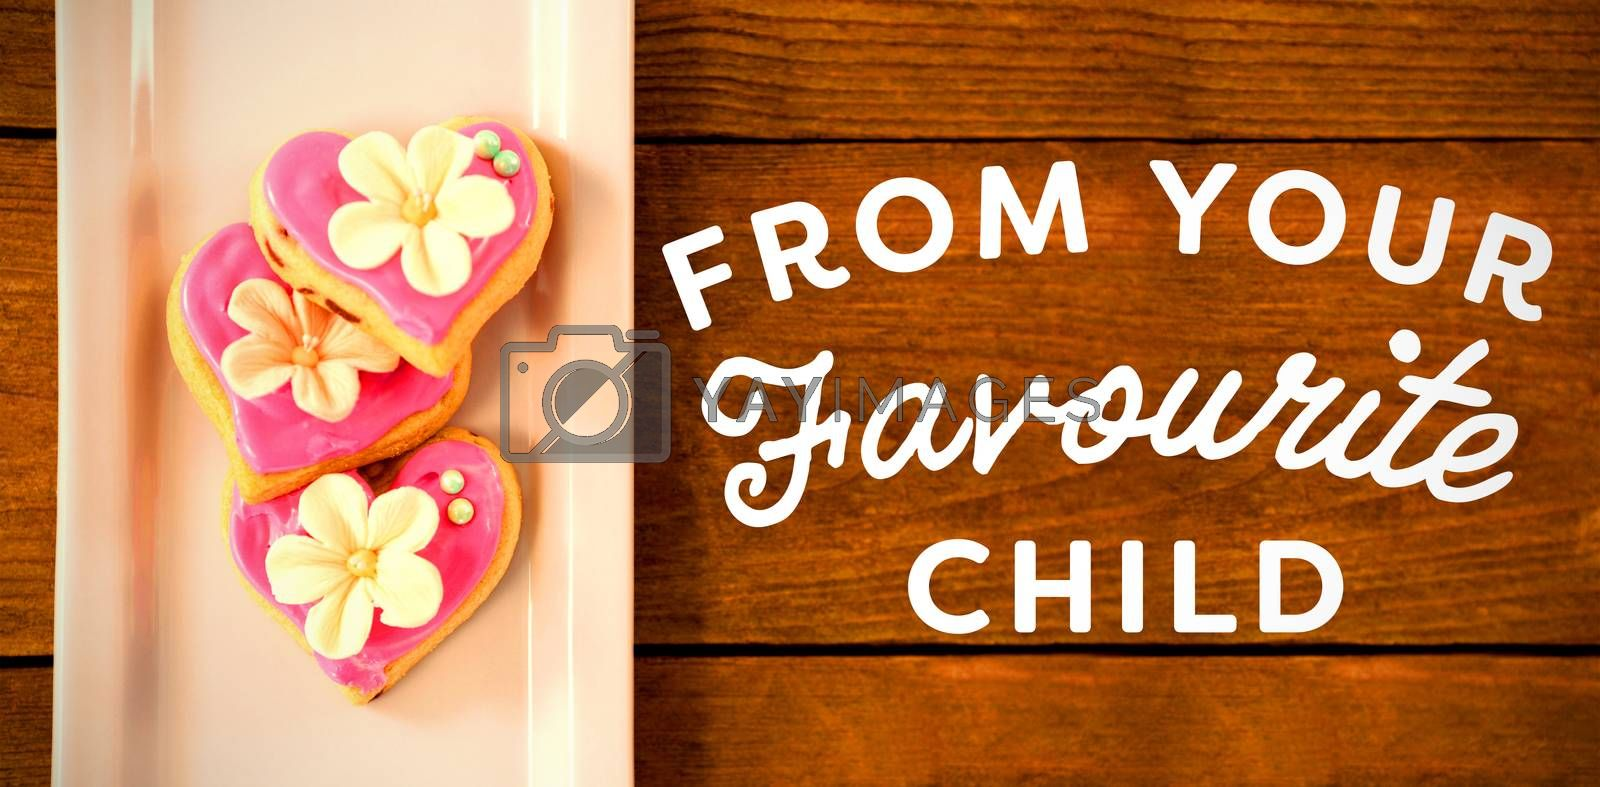 Happy mothers day message on table with cookies